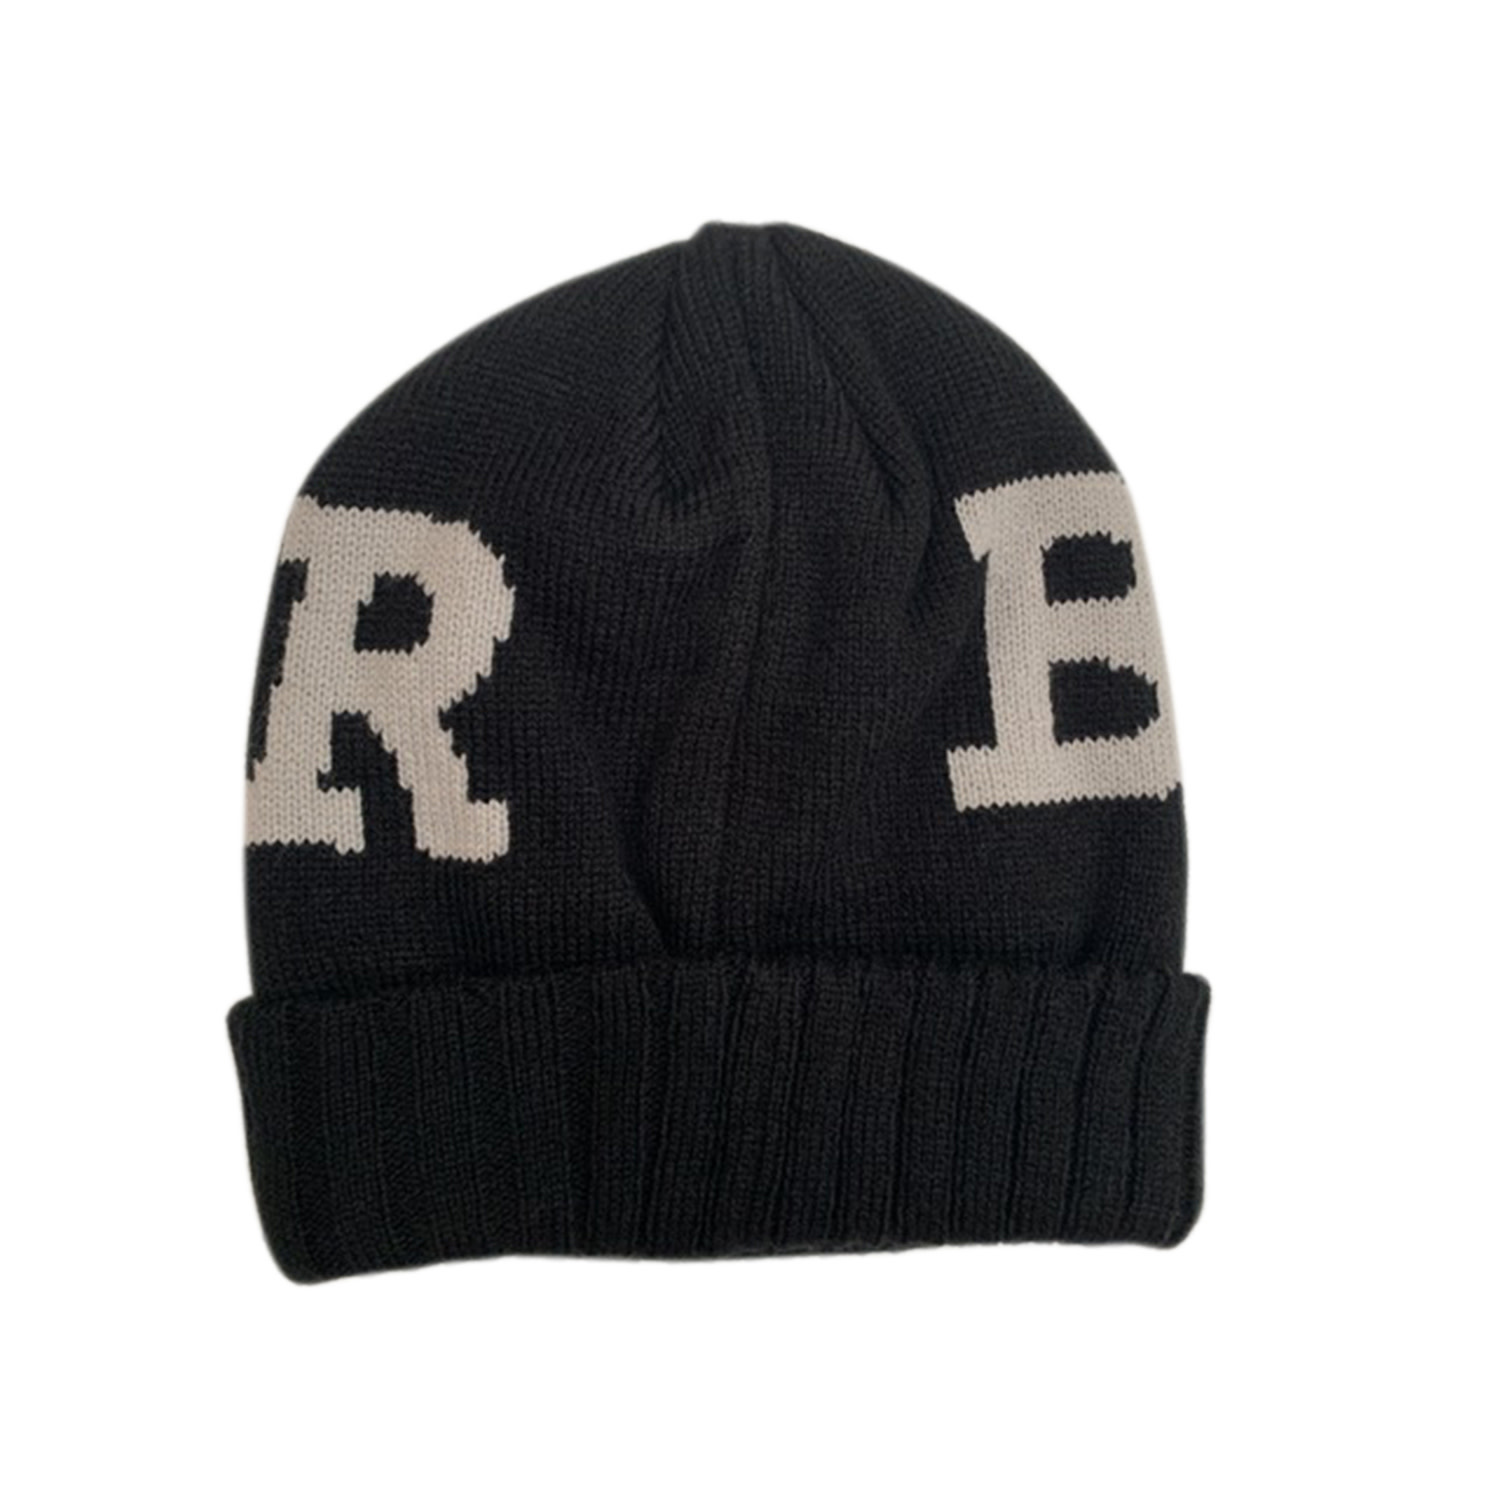 Baker Skateboards Ribbon Black Beanie